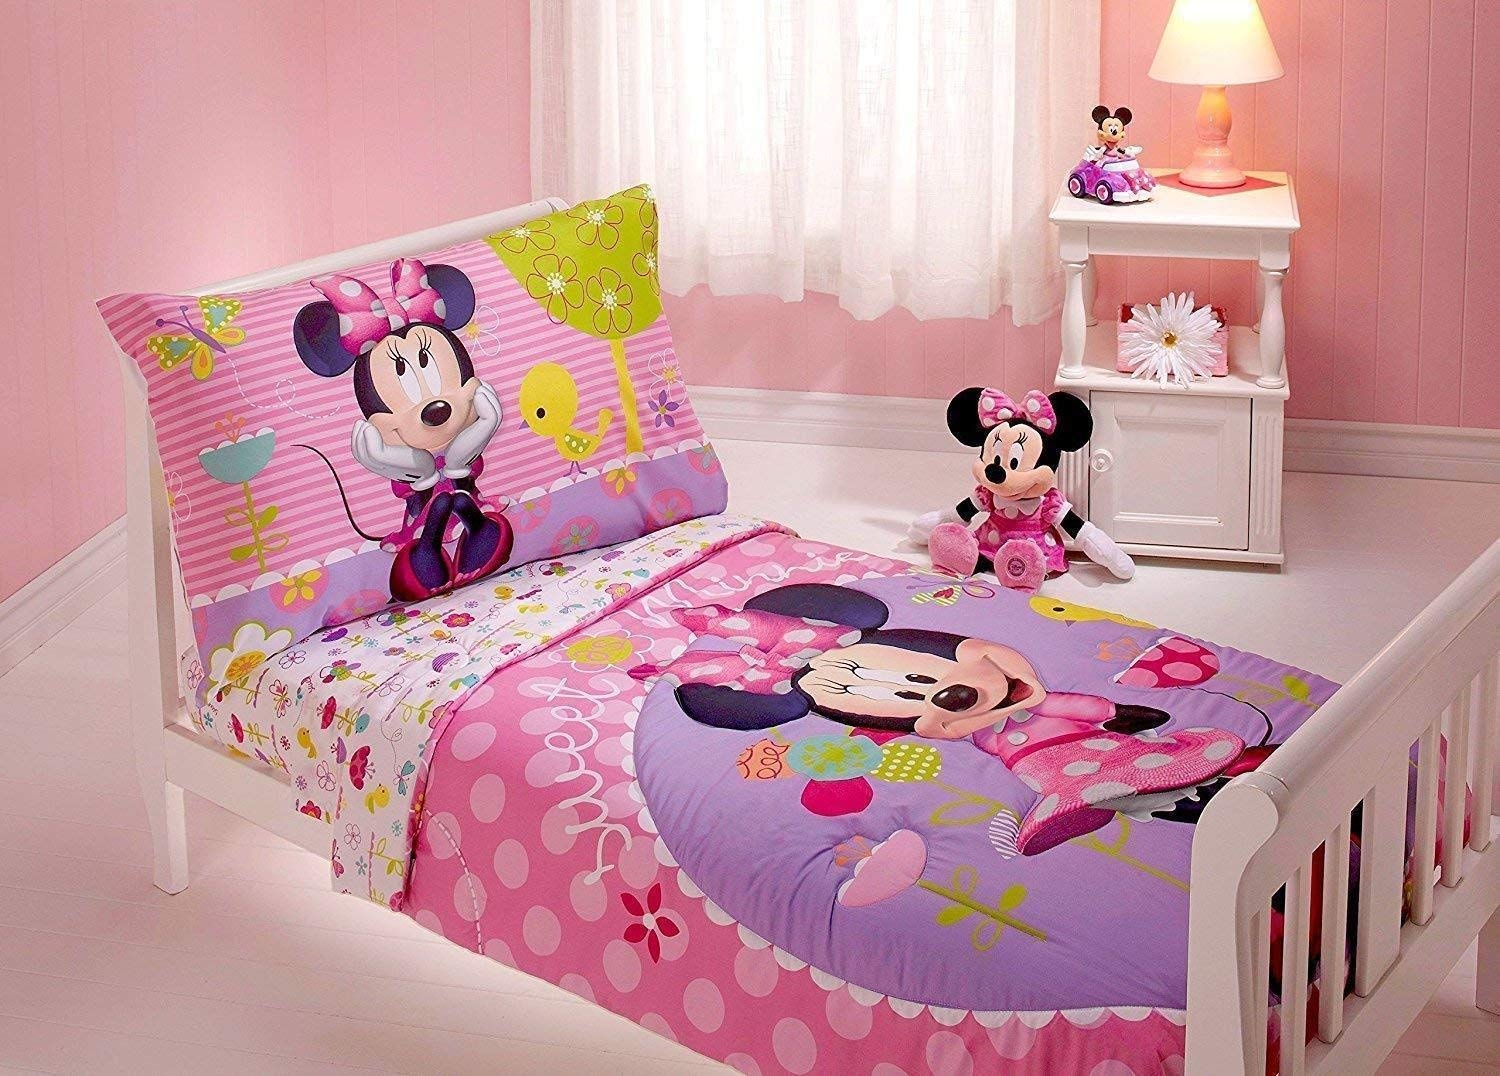 Amazoncom Minnie Mouse 4 Piece Toddler Bedding Set Home Kitchen